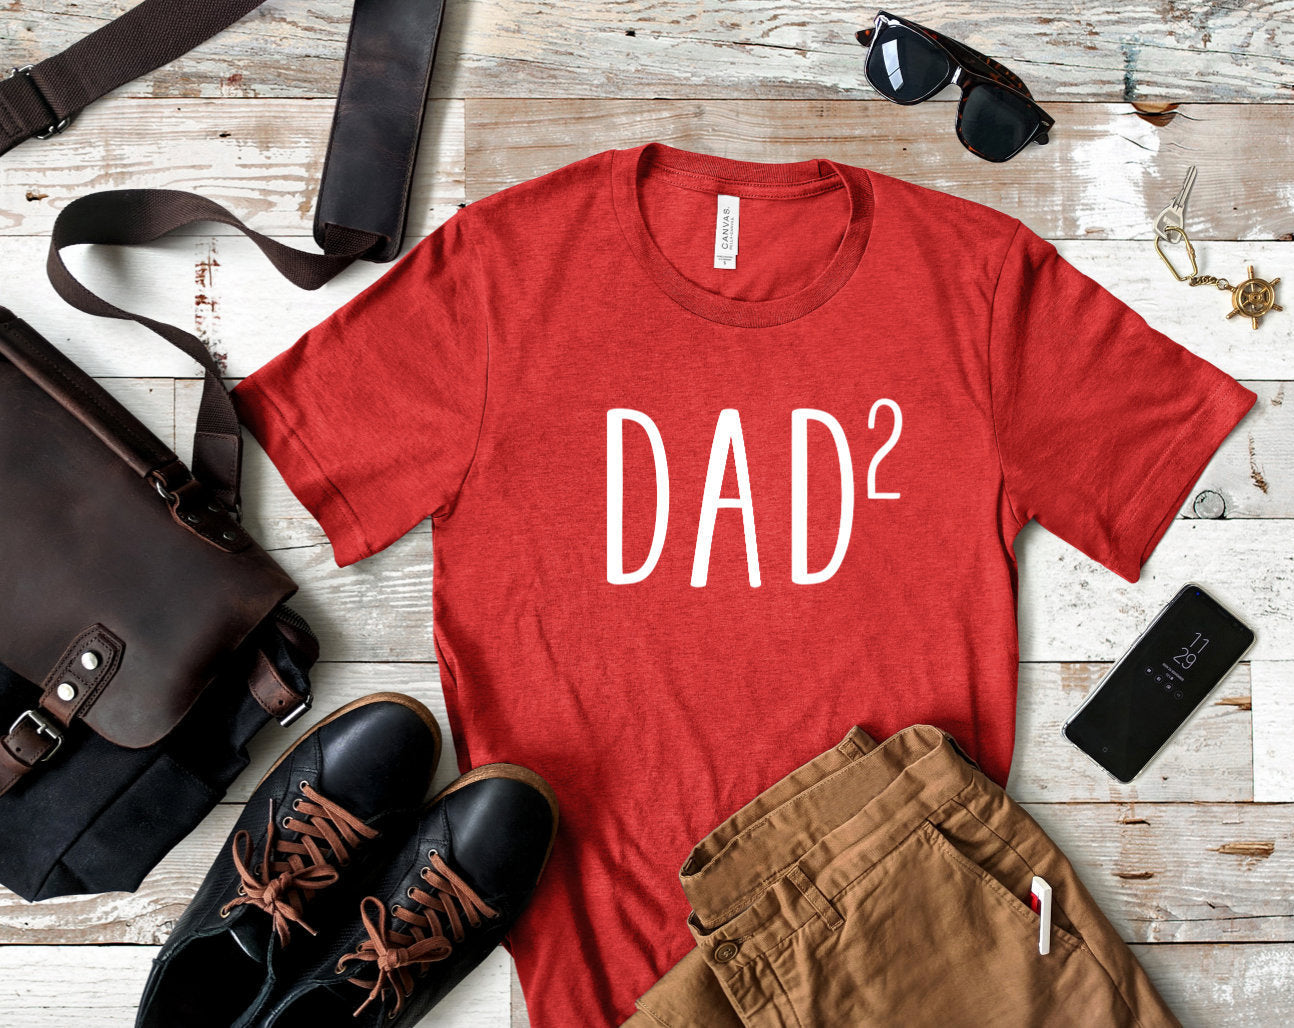 Dad of Two Heather Red T-shirt - Dad 2 Shirt - Dad Shirts - Men's Shirts - Father's Day Gift - Gift for Dad